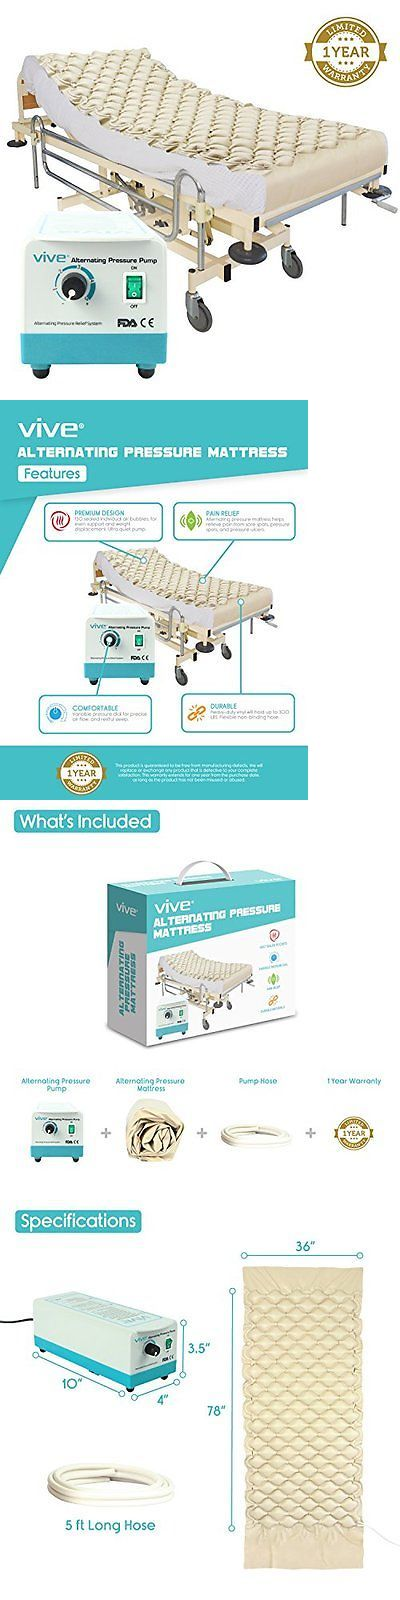 Other Orthopedic Products: Pressure Mattress Electric Pump Inflatable Hospital Bed Pad Ulcer Sore Treatment -> BUY IT NOW ONLY: $94.79 on eBay!